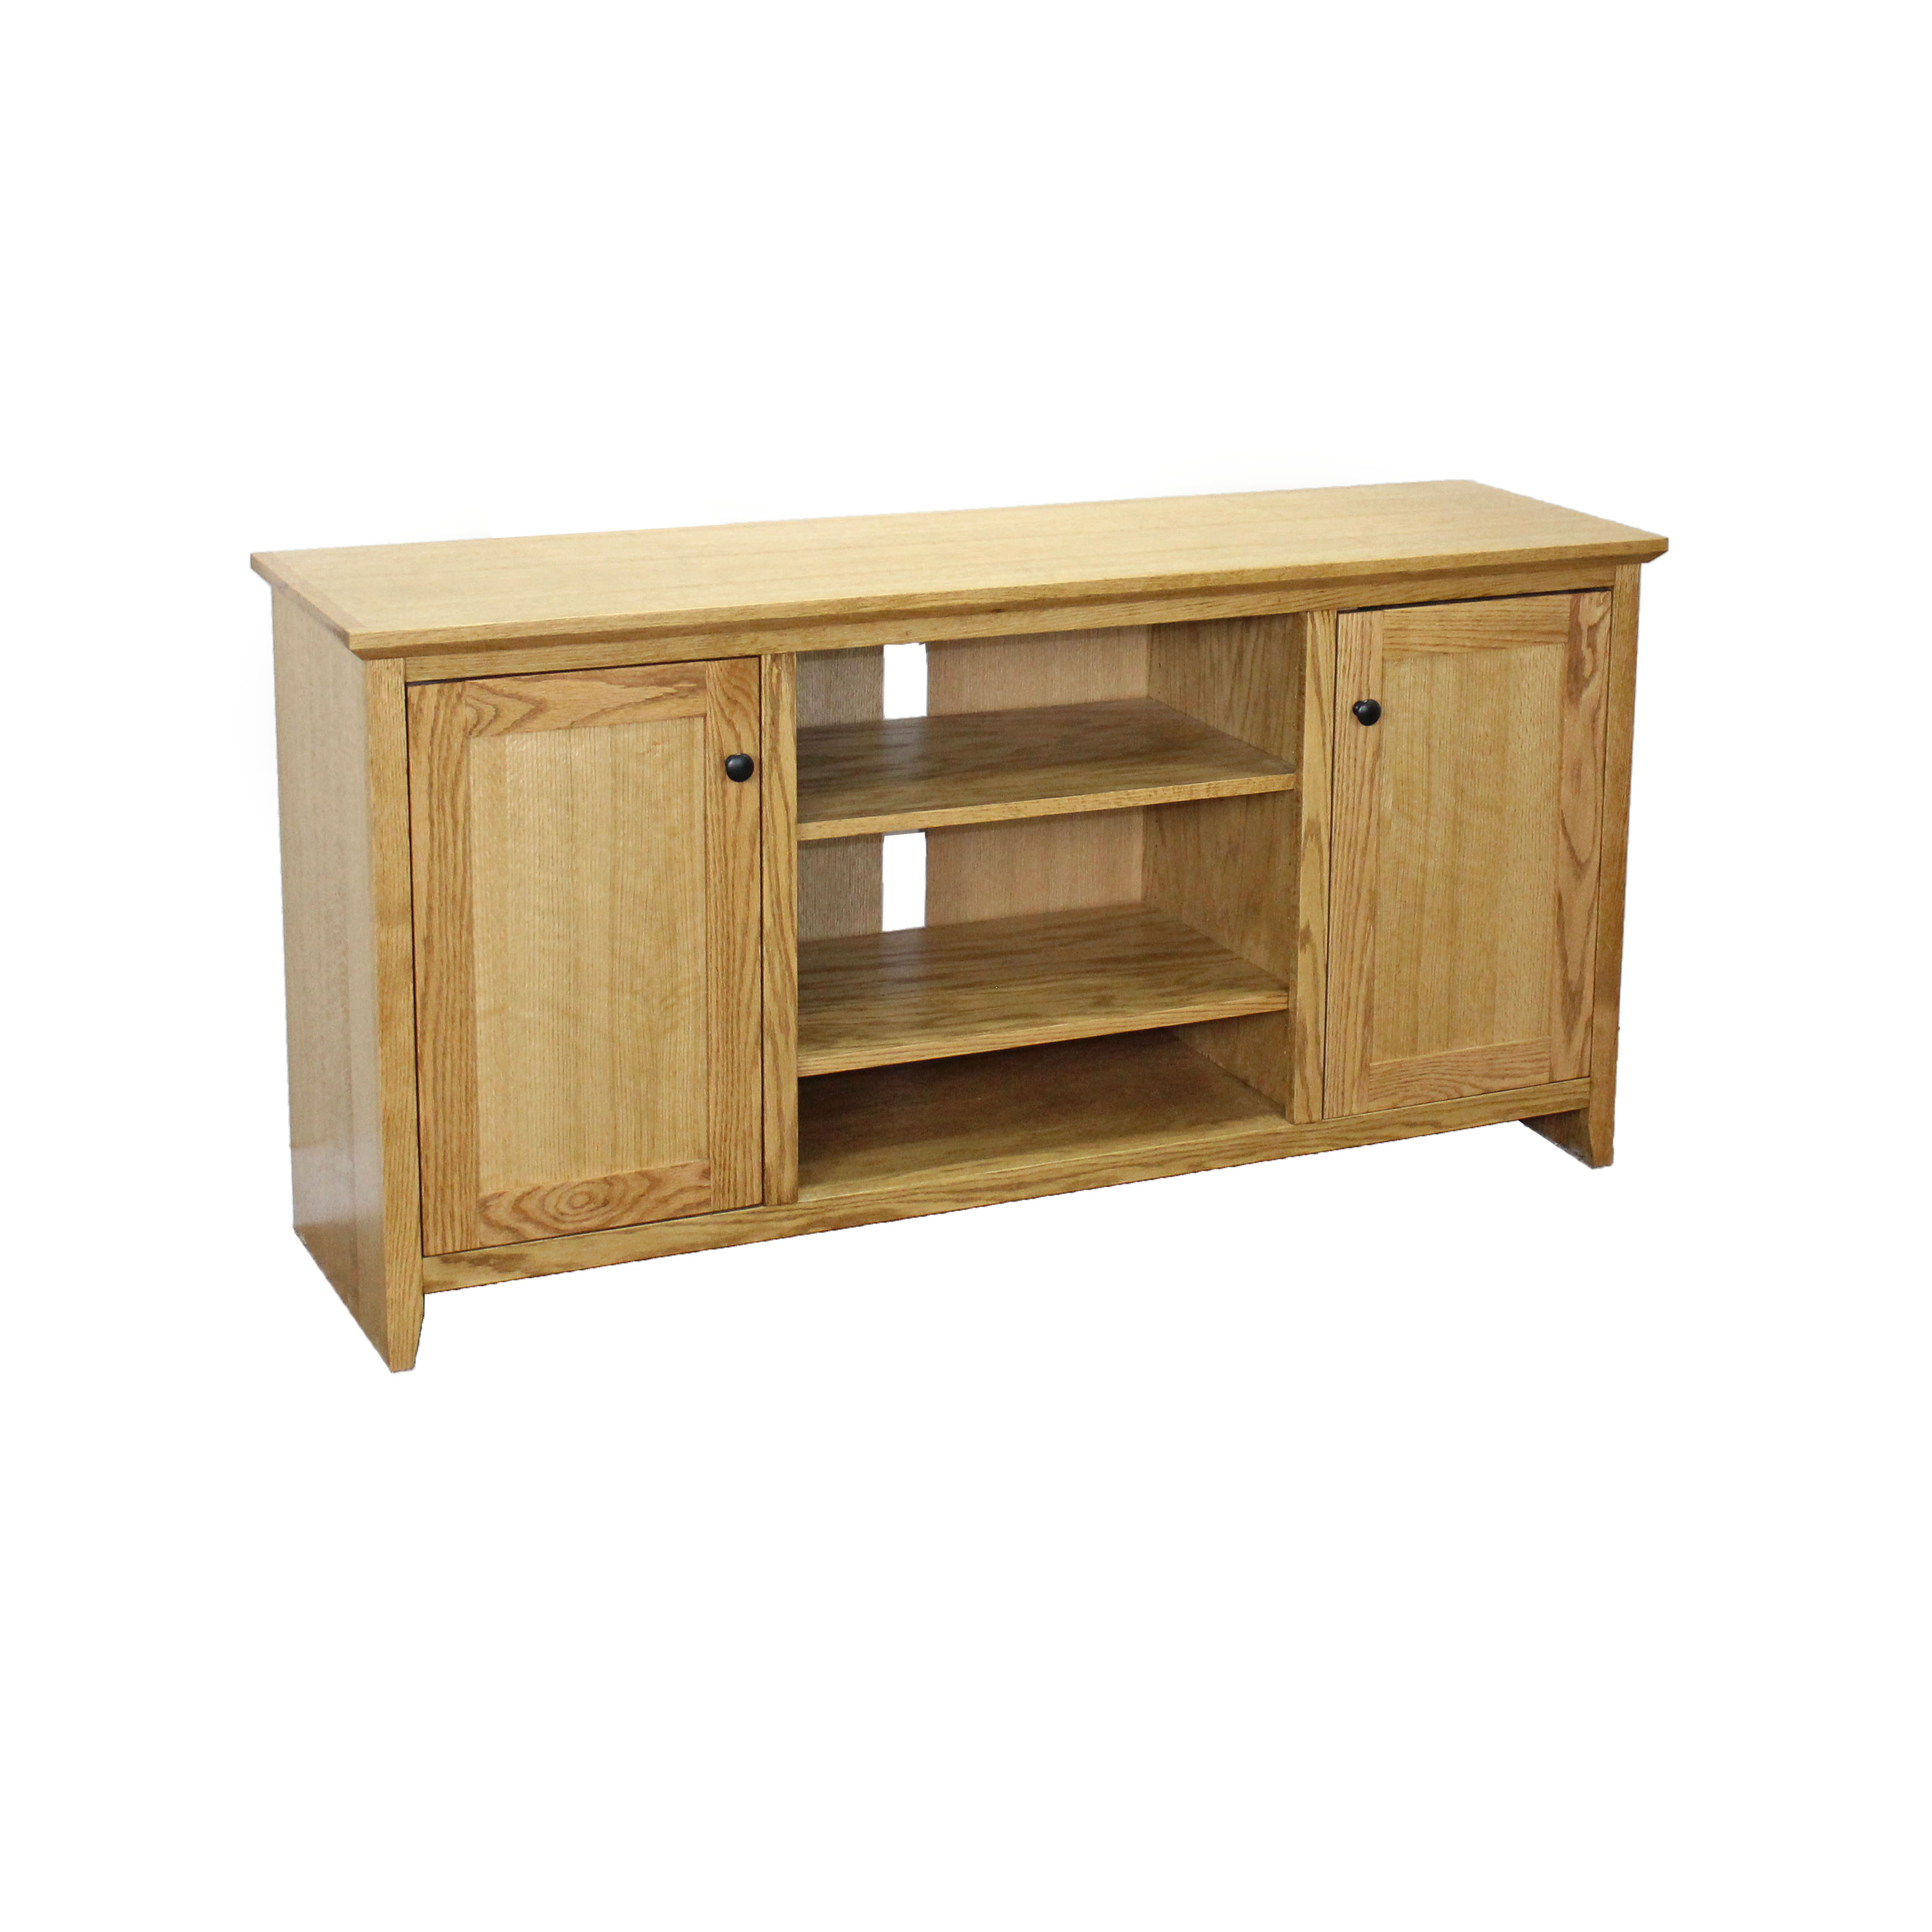 Oak Shaker TV Console w/ Wood Doors